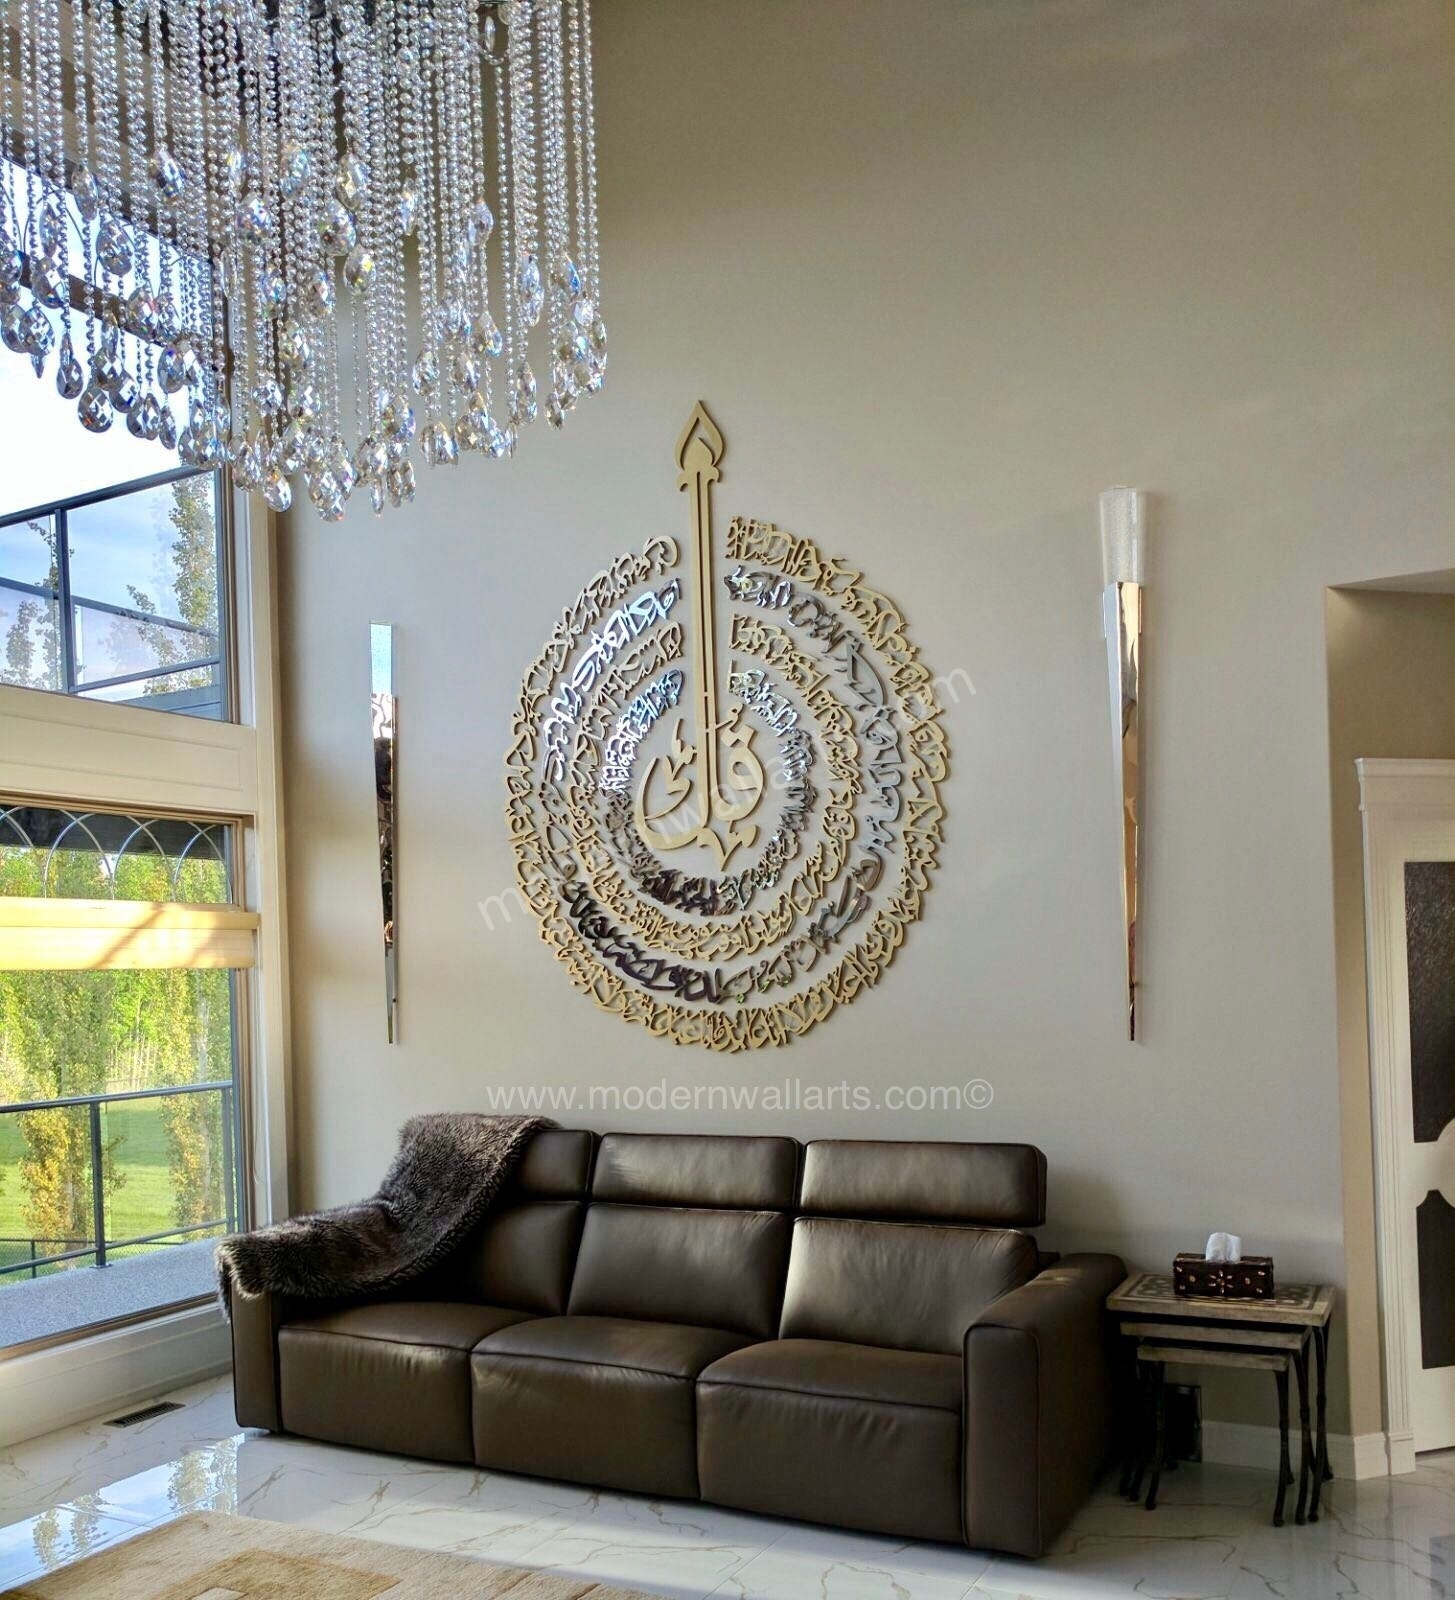 Large 4 Qul Art. Modern Contemporary Islamic Callligraphy Art Intended For 2017 Modern Wall Art (Gallery 10 of 15)